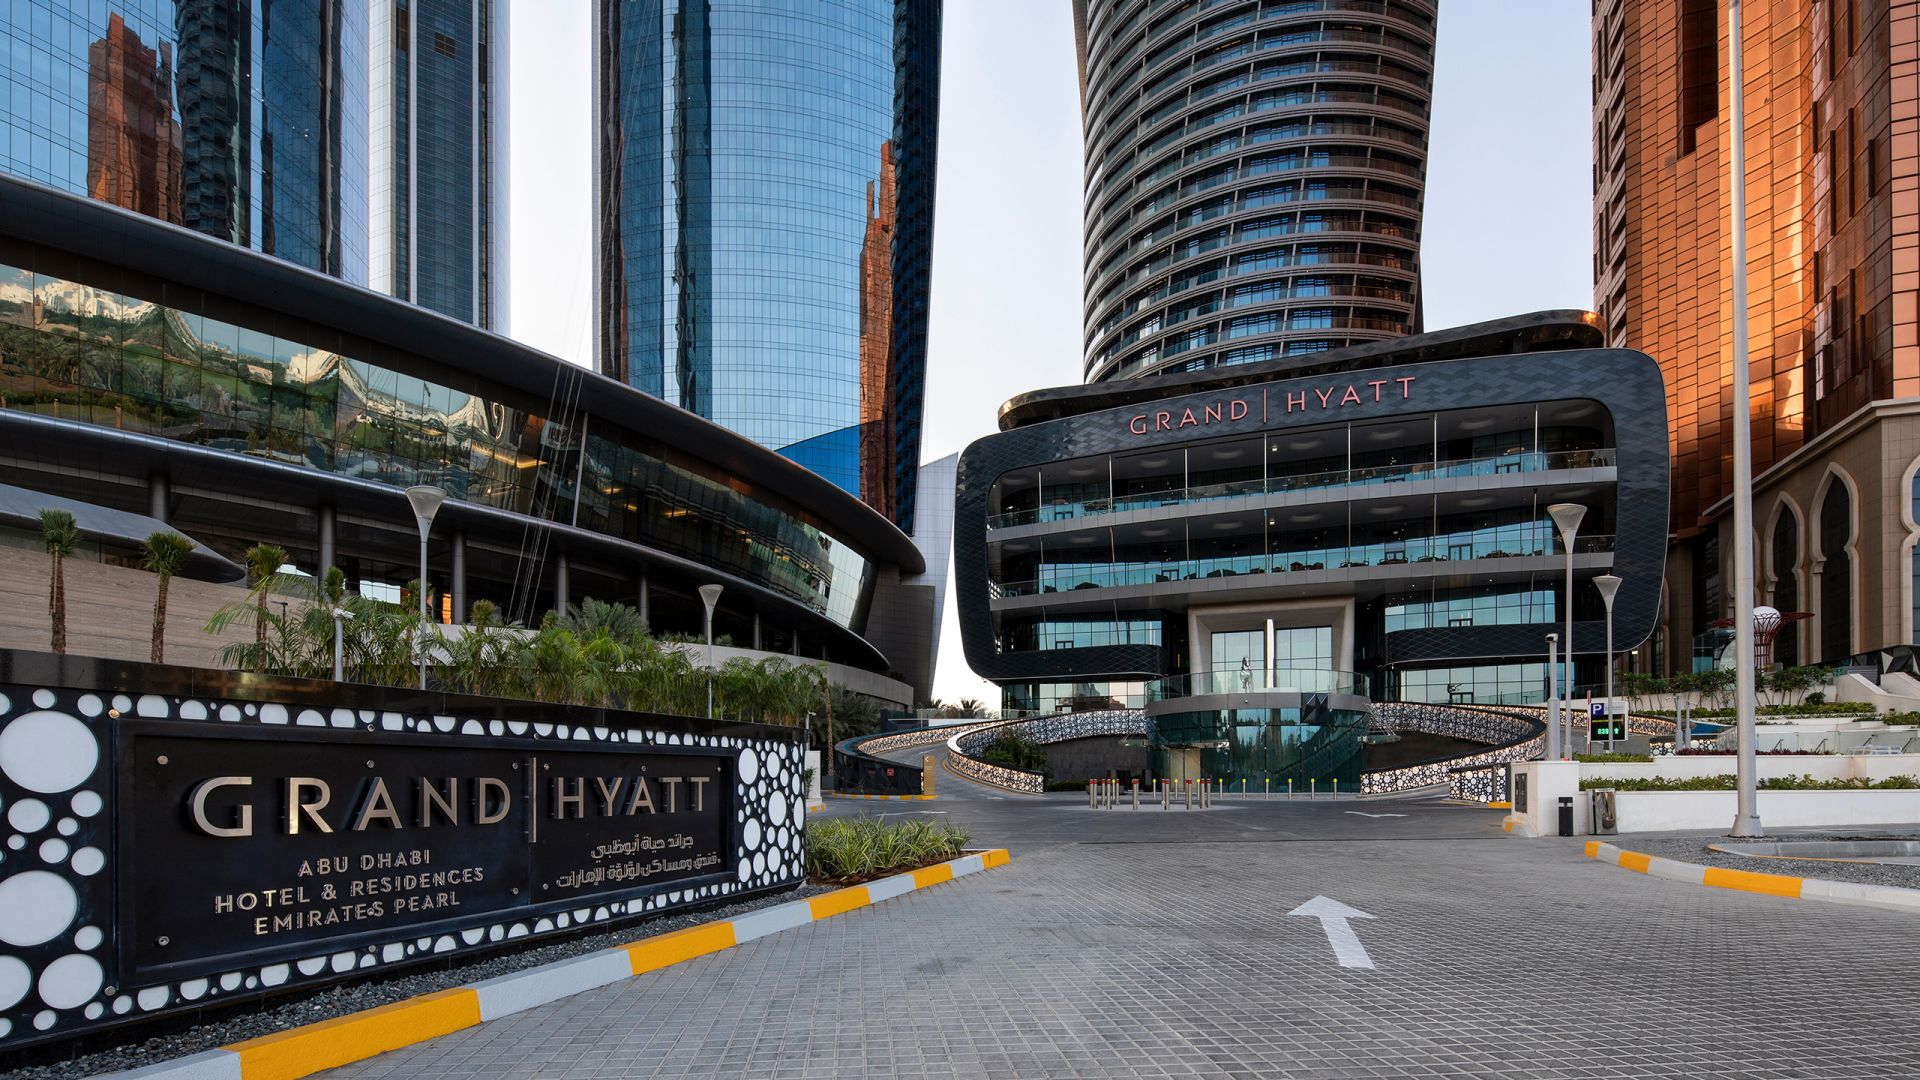 Grand hyatt abu dhabi exterior view